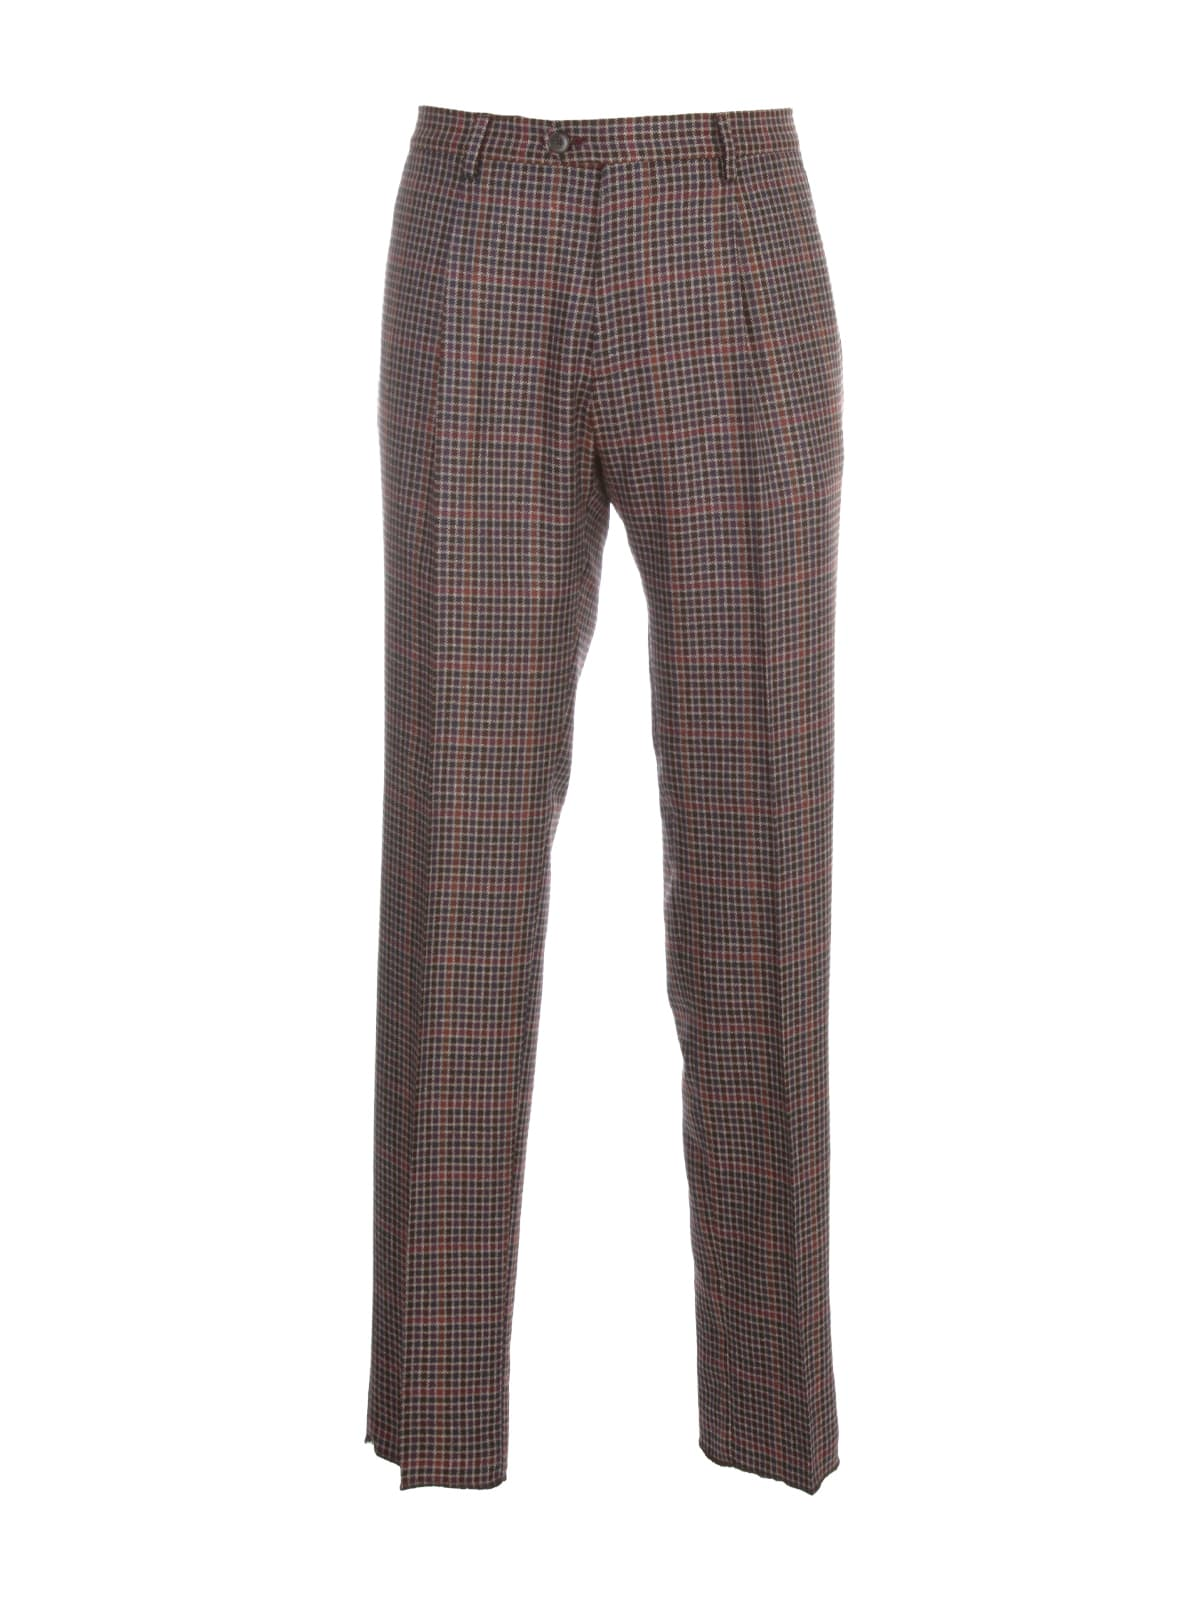 Etro Slim Pants 1 Pence